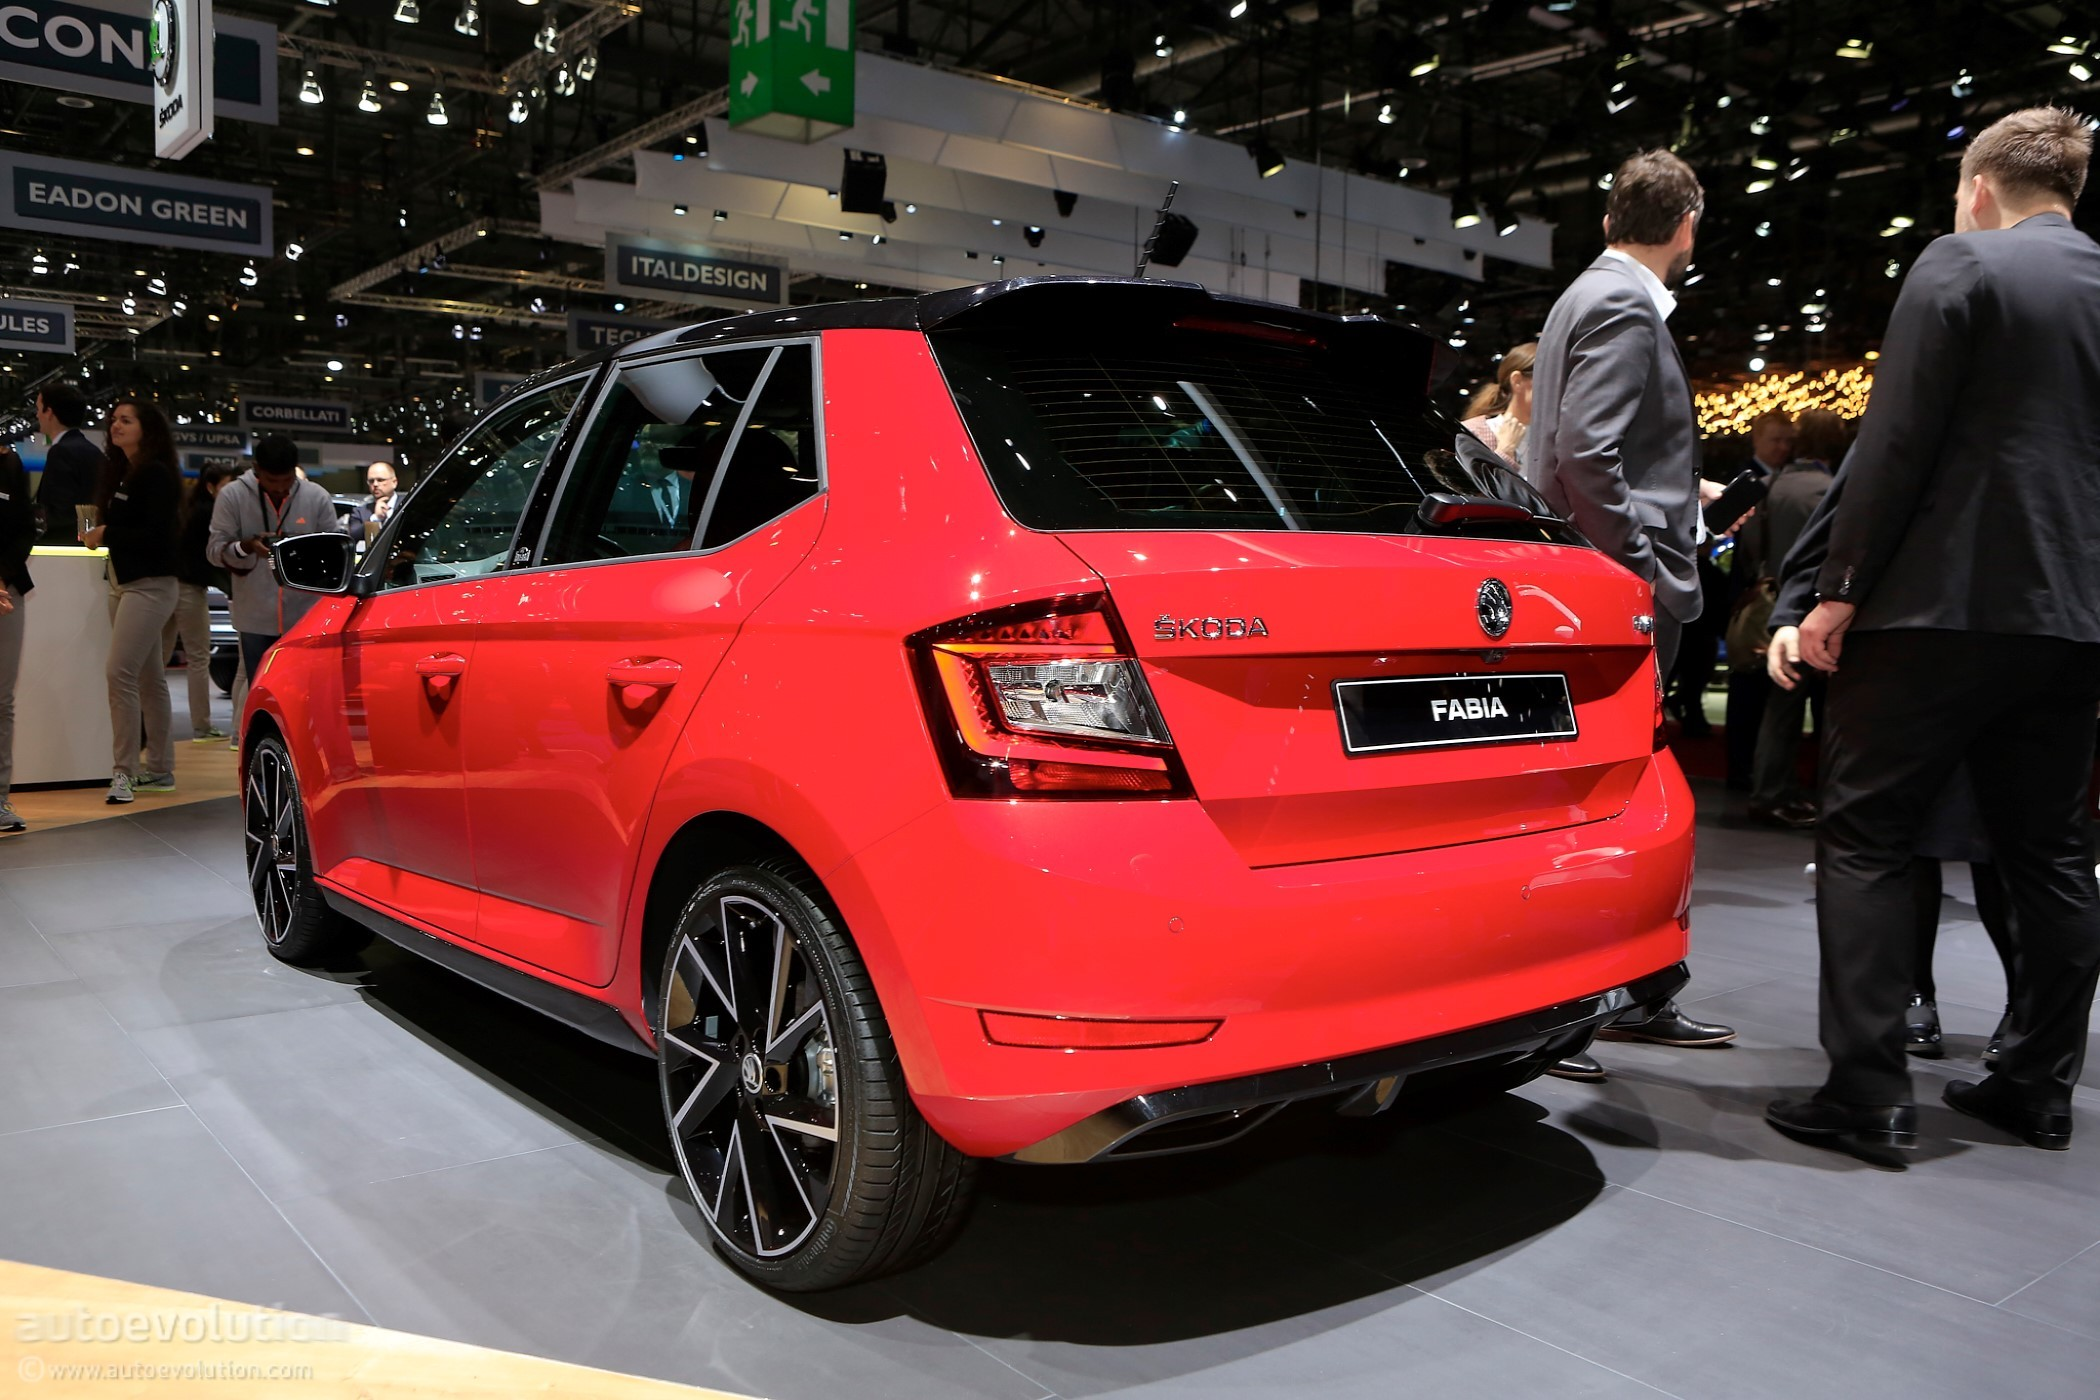 new skoda fabia engines revealed including 3 cylinder 1 4. Black Bedroom Furniture Sets. Home Design Ideas